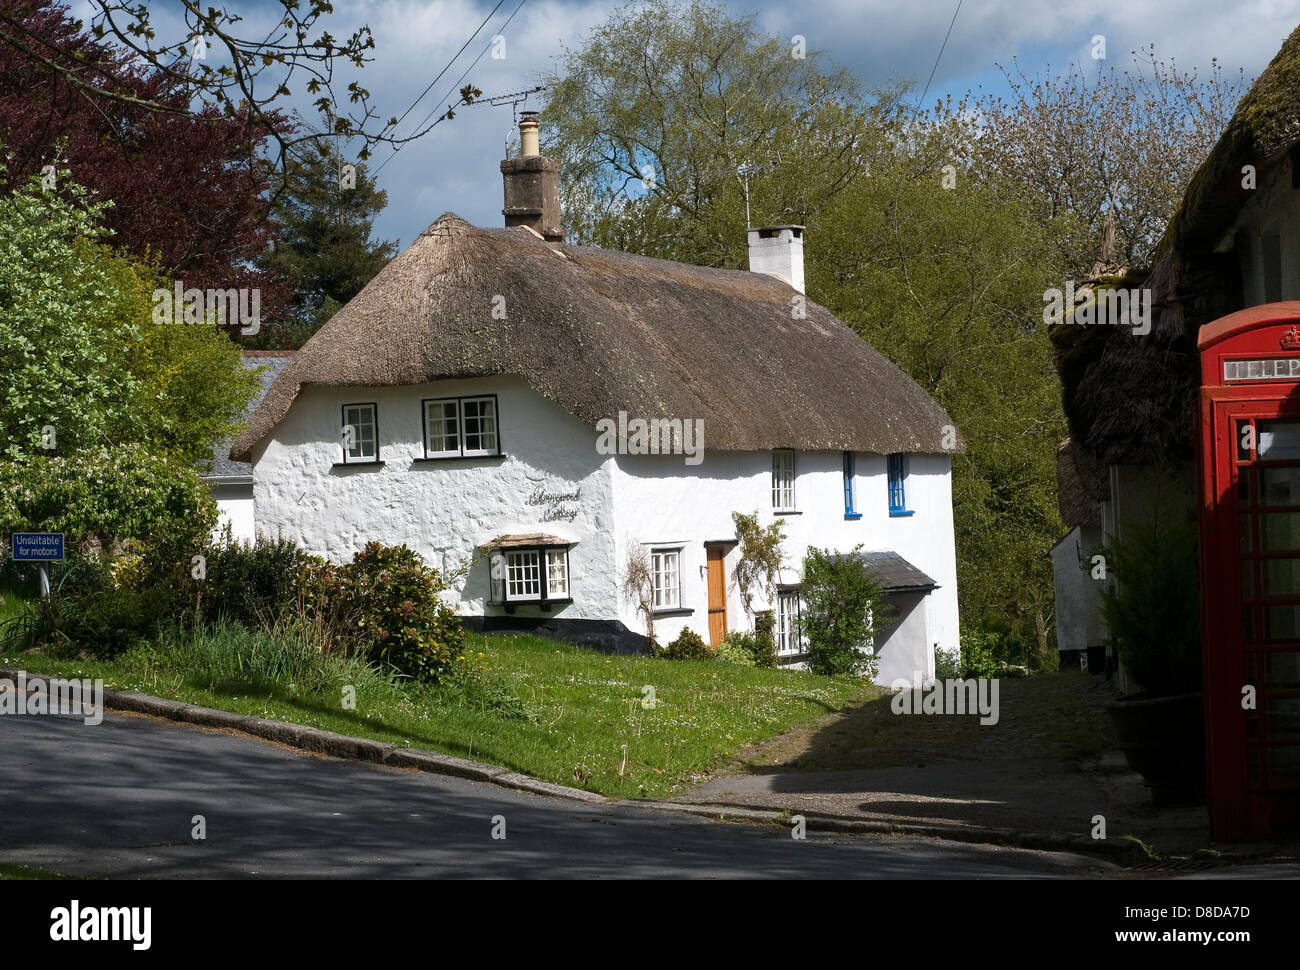 North Bovey Devon,cob and thatch,red telephone box,Architecture, Building Exterior, Cottage, Croft, Nature, No People, - Stock Image